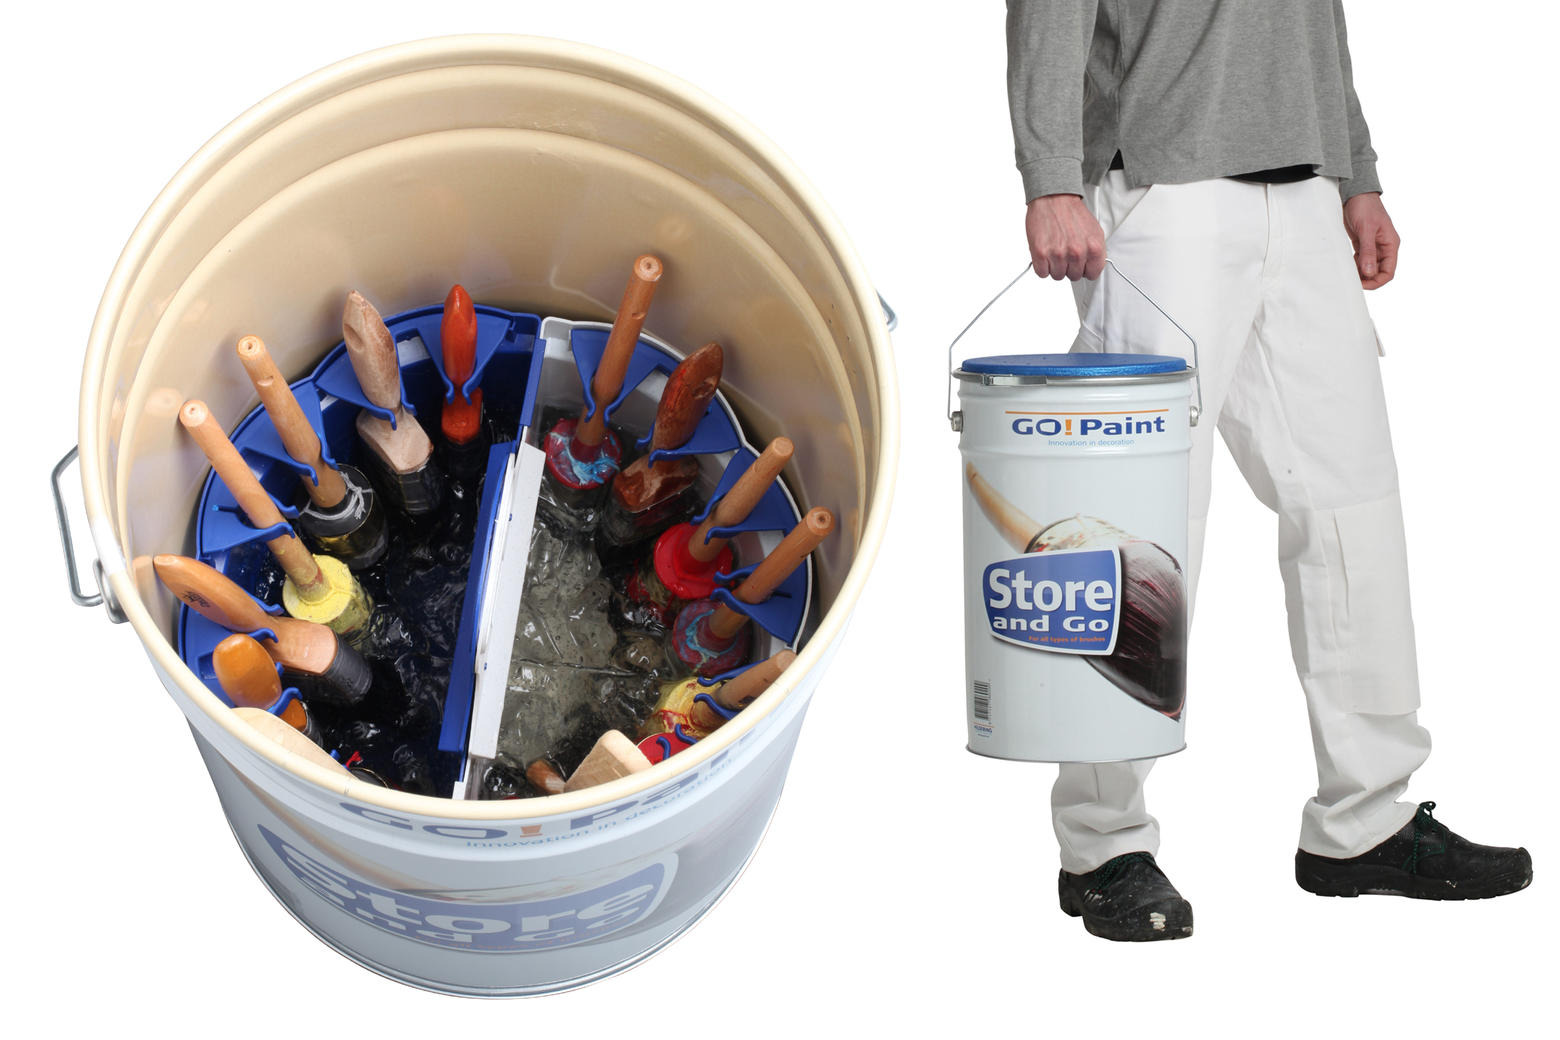 Extra large container with gel for storage of many paint brushes, even bent radiator brushes.